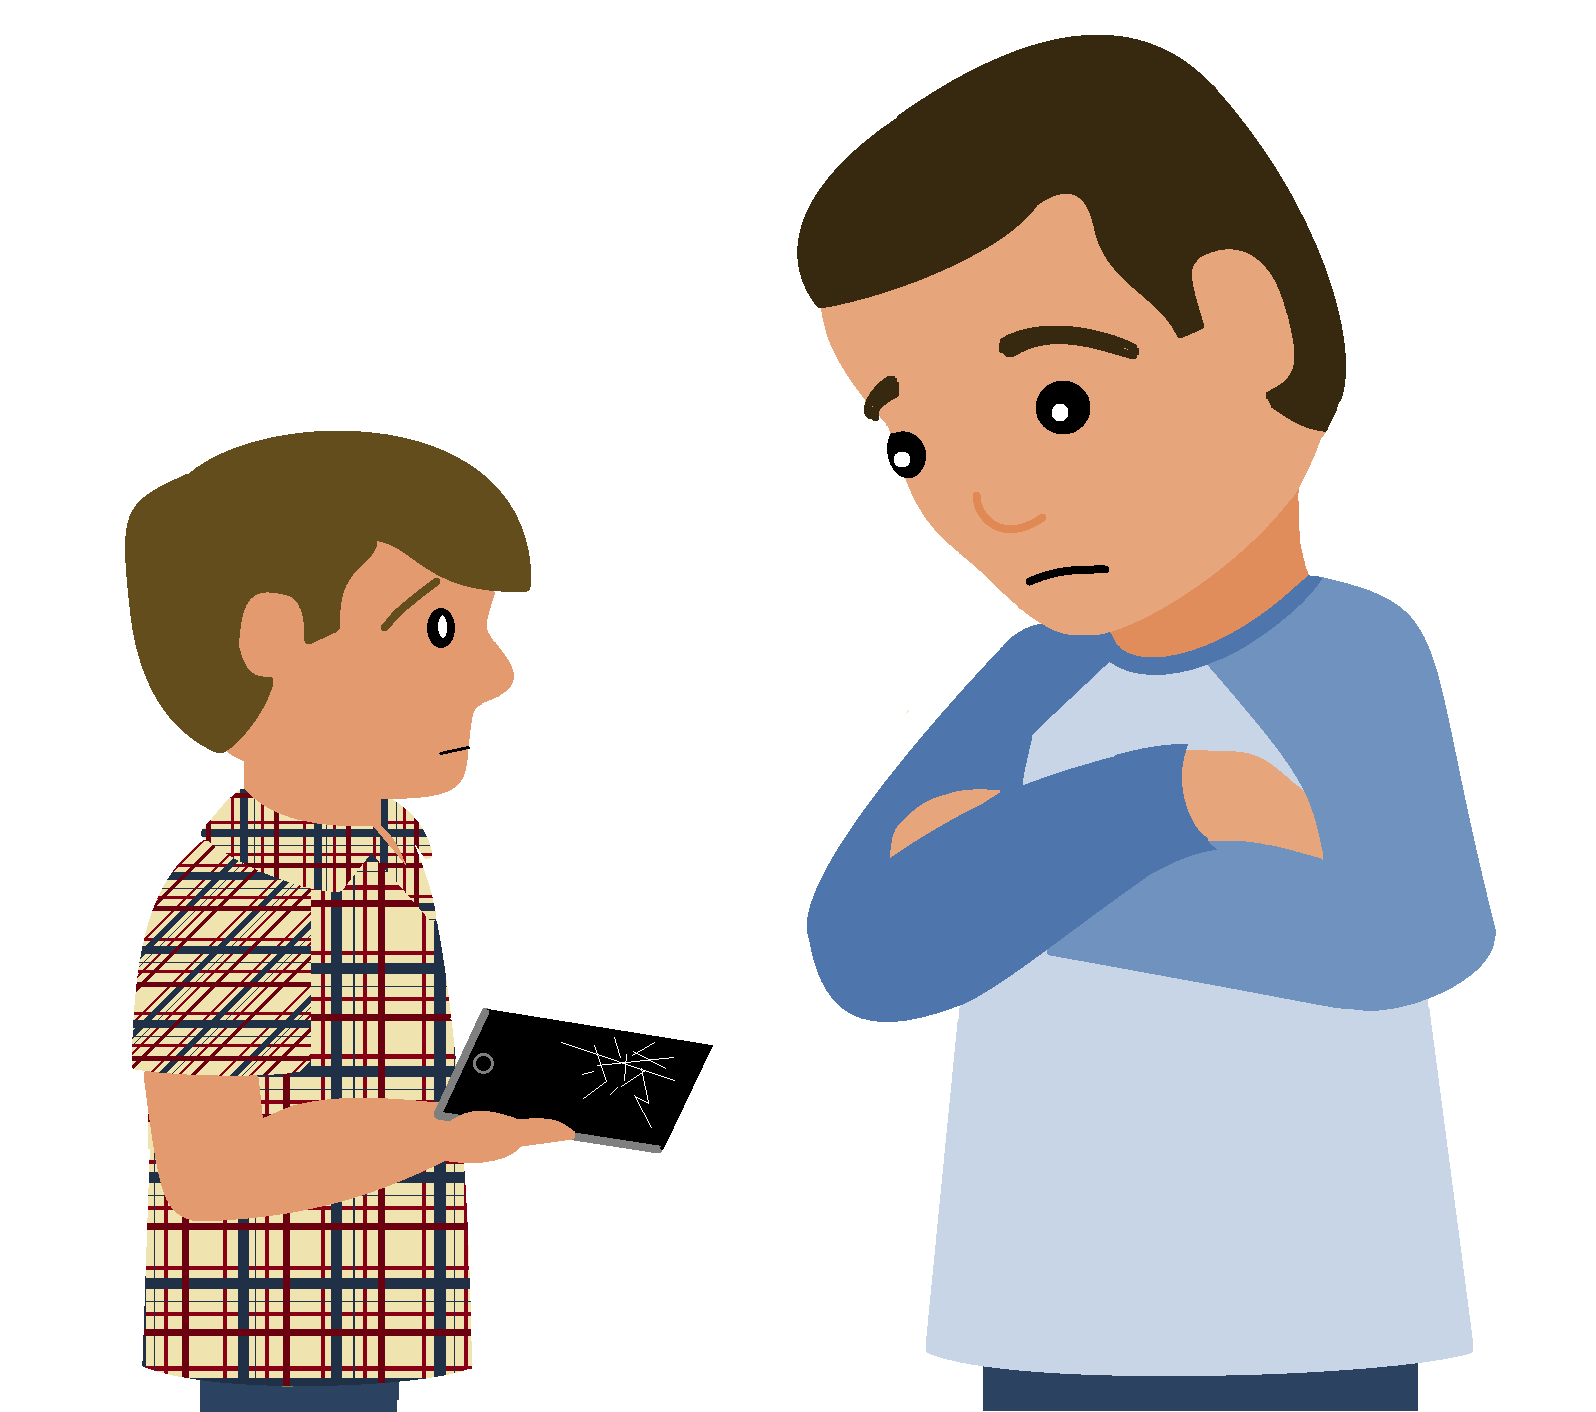 Professional clipart honest Honesty on Download Free Clipart